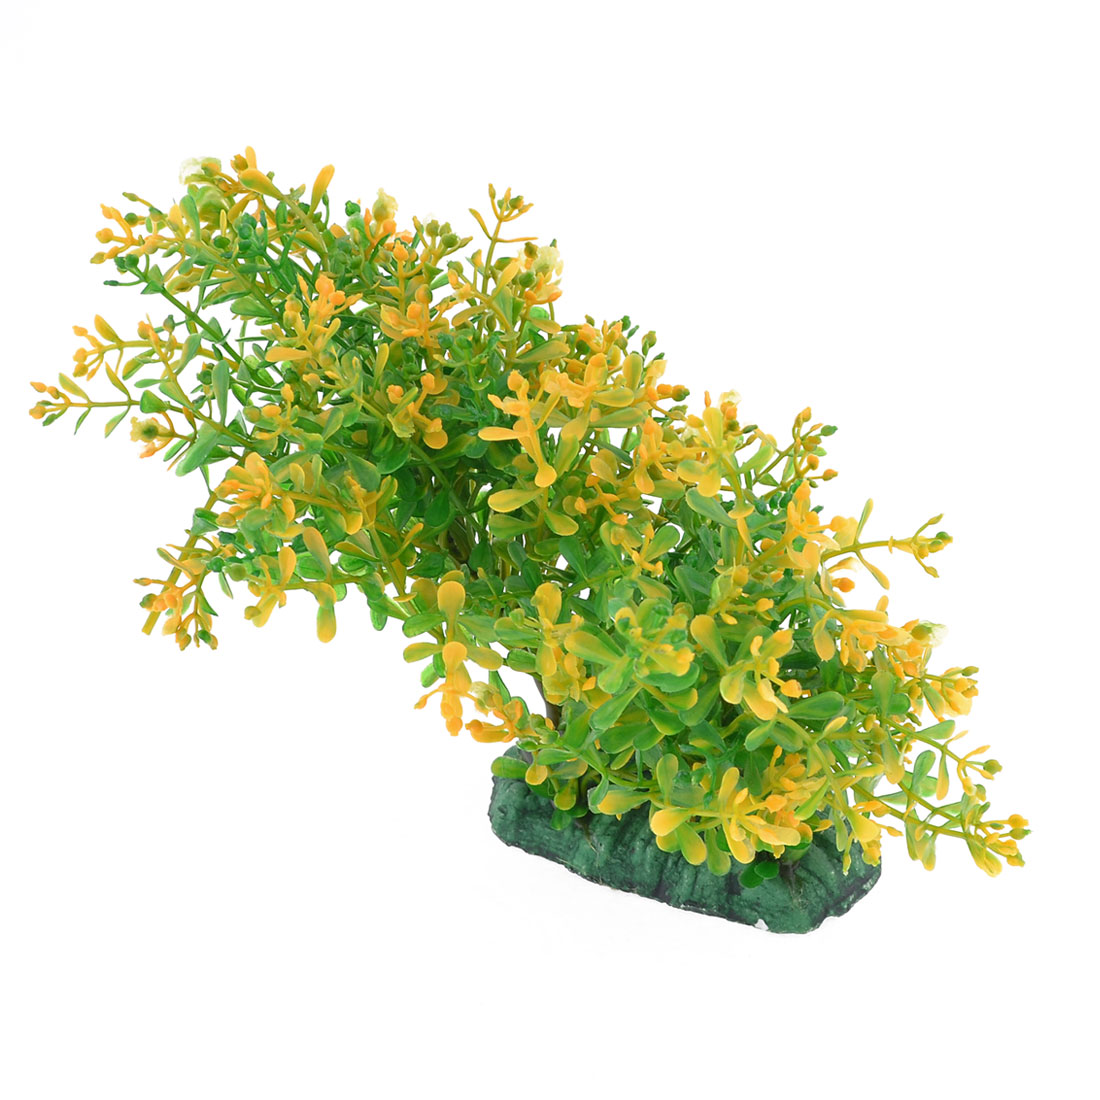 "Green Yellow Artificial Plastic Water Plants Decor 5.1"" High for Aquarium"